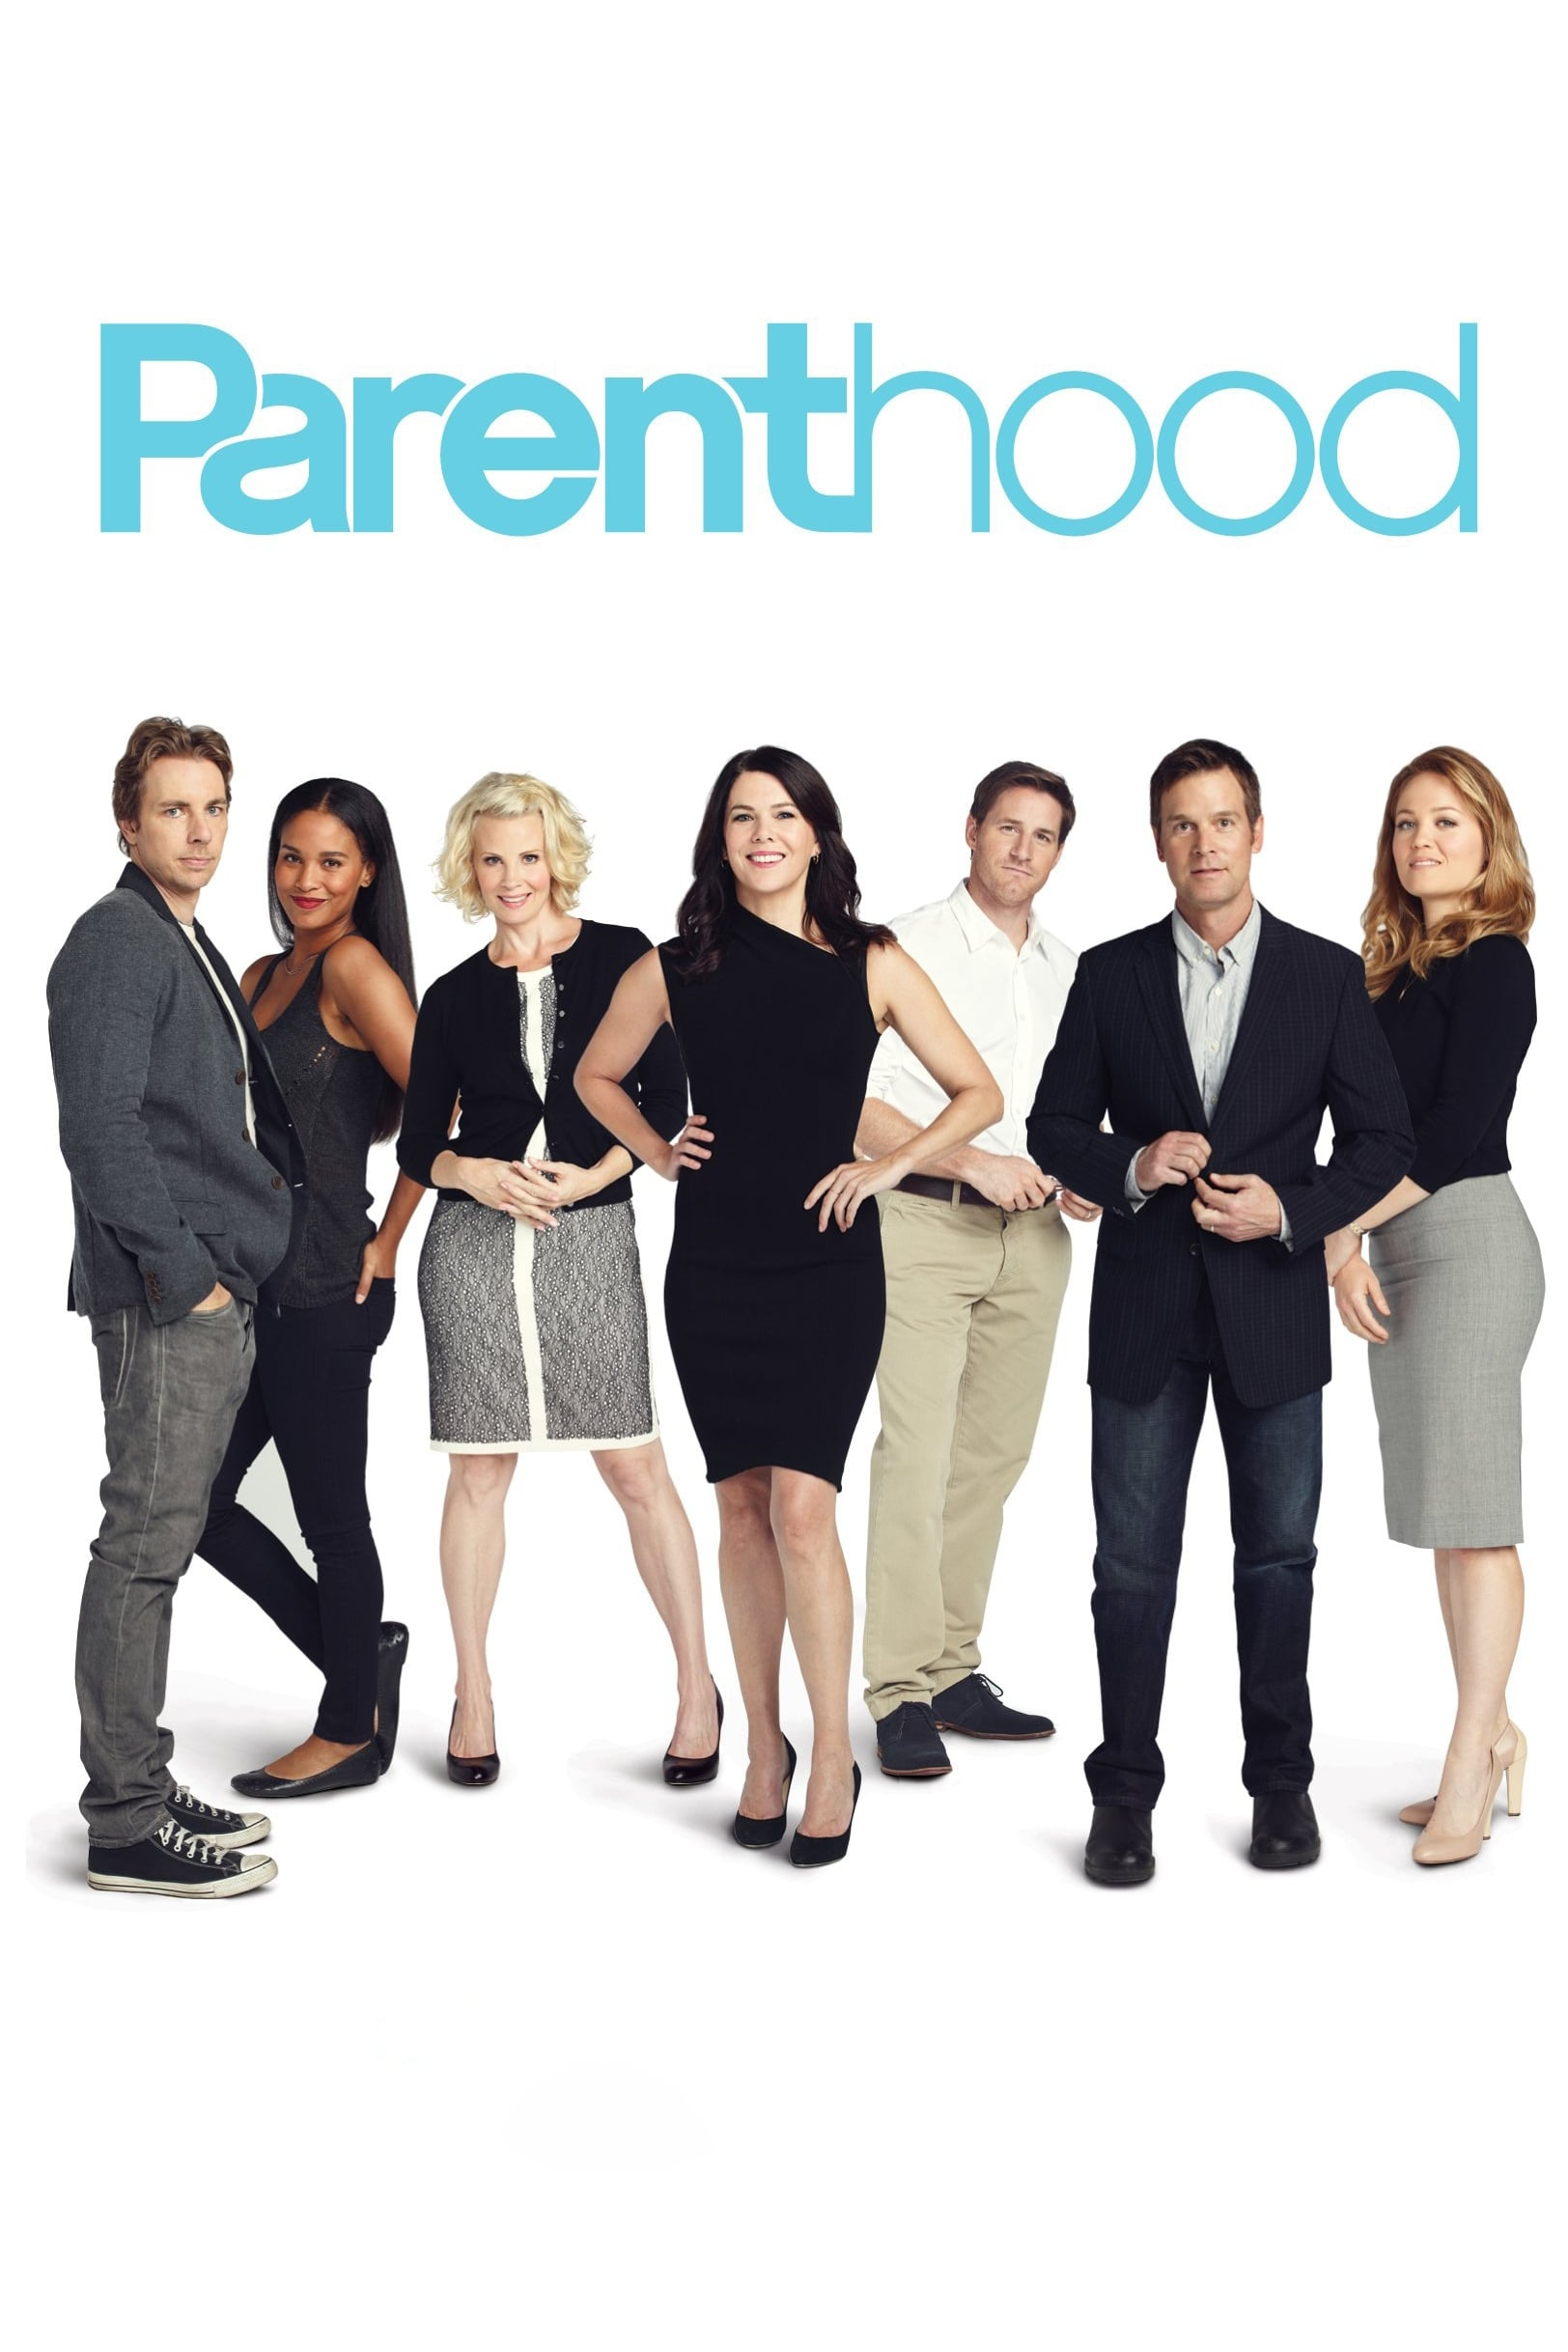 Parenthood TV Shows About Big Family